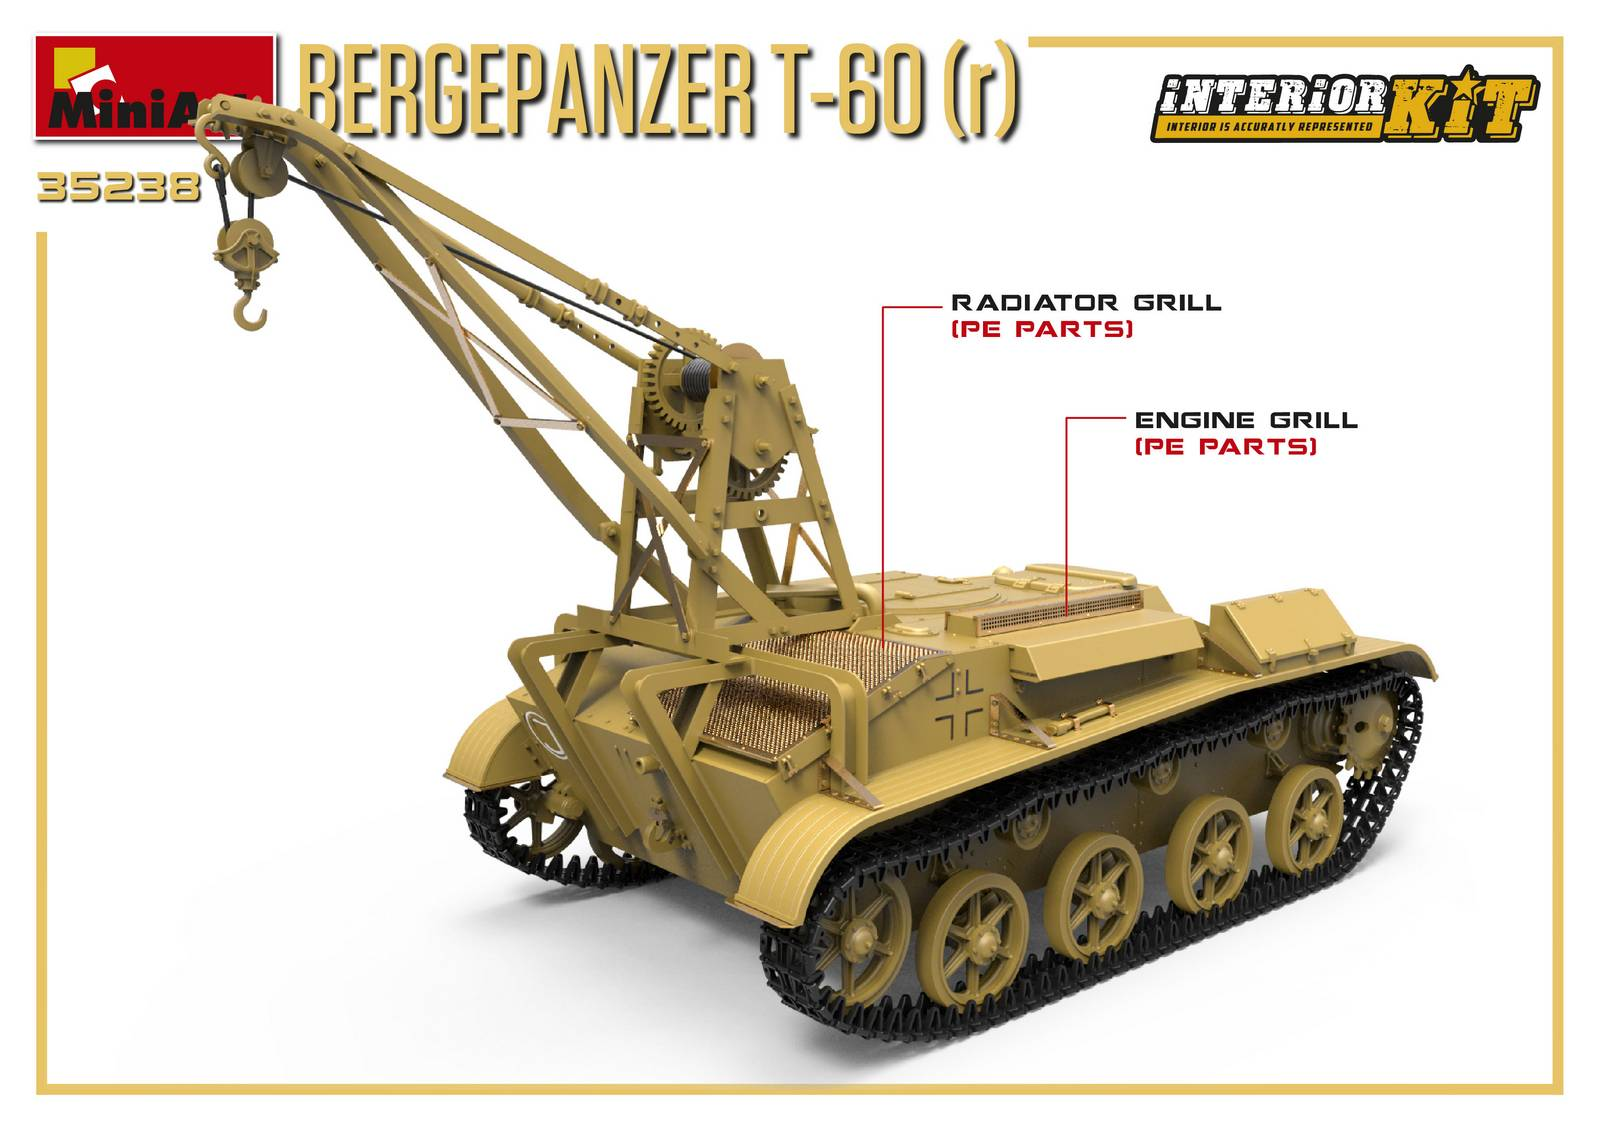 1/35 BERGEPANZER T-60 ( r ) INTERIOR KIT 35238